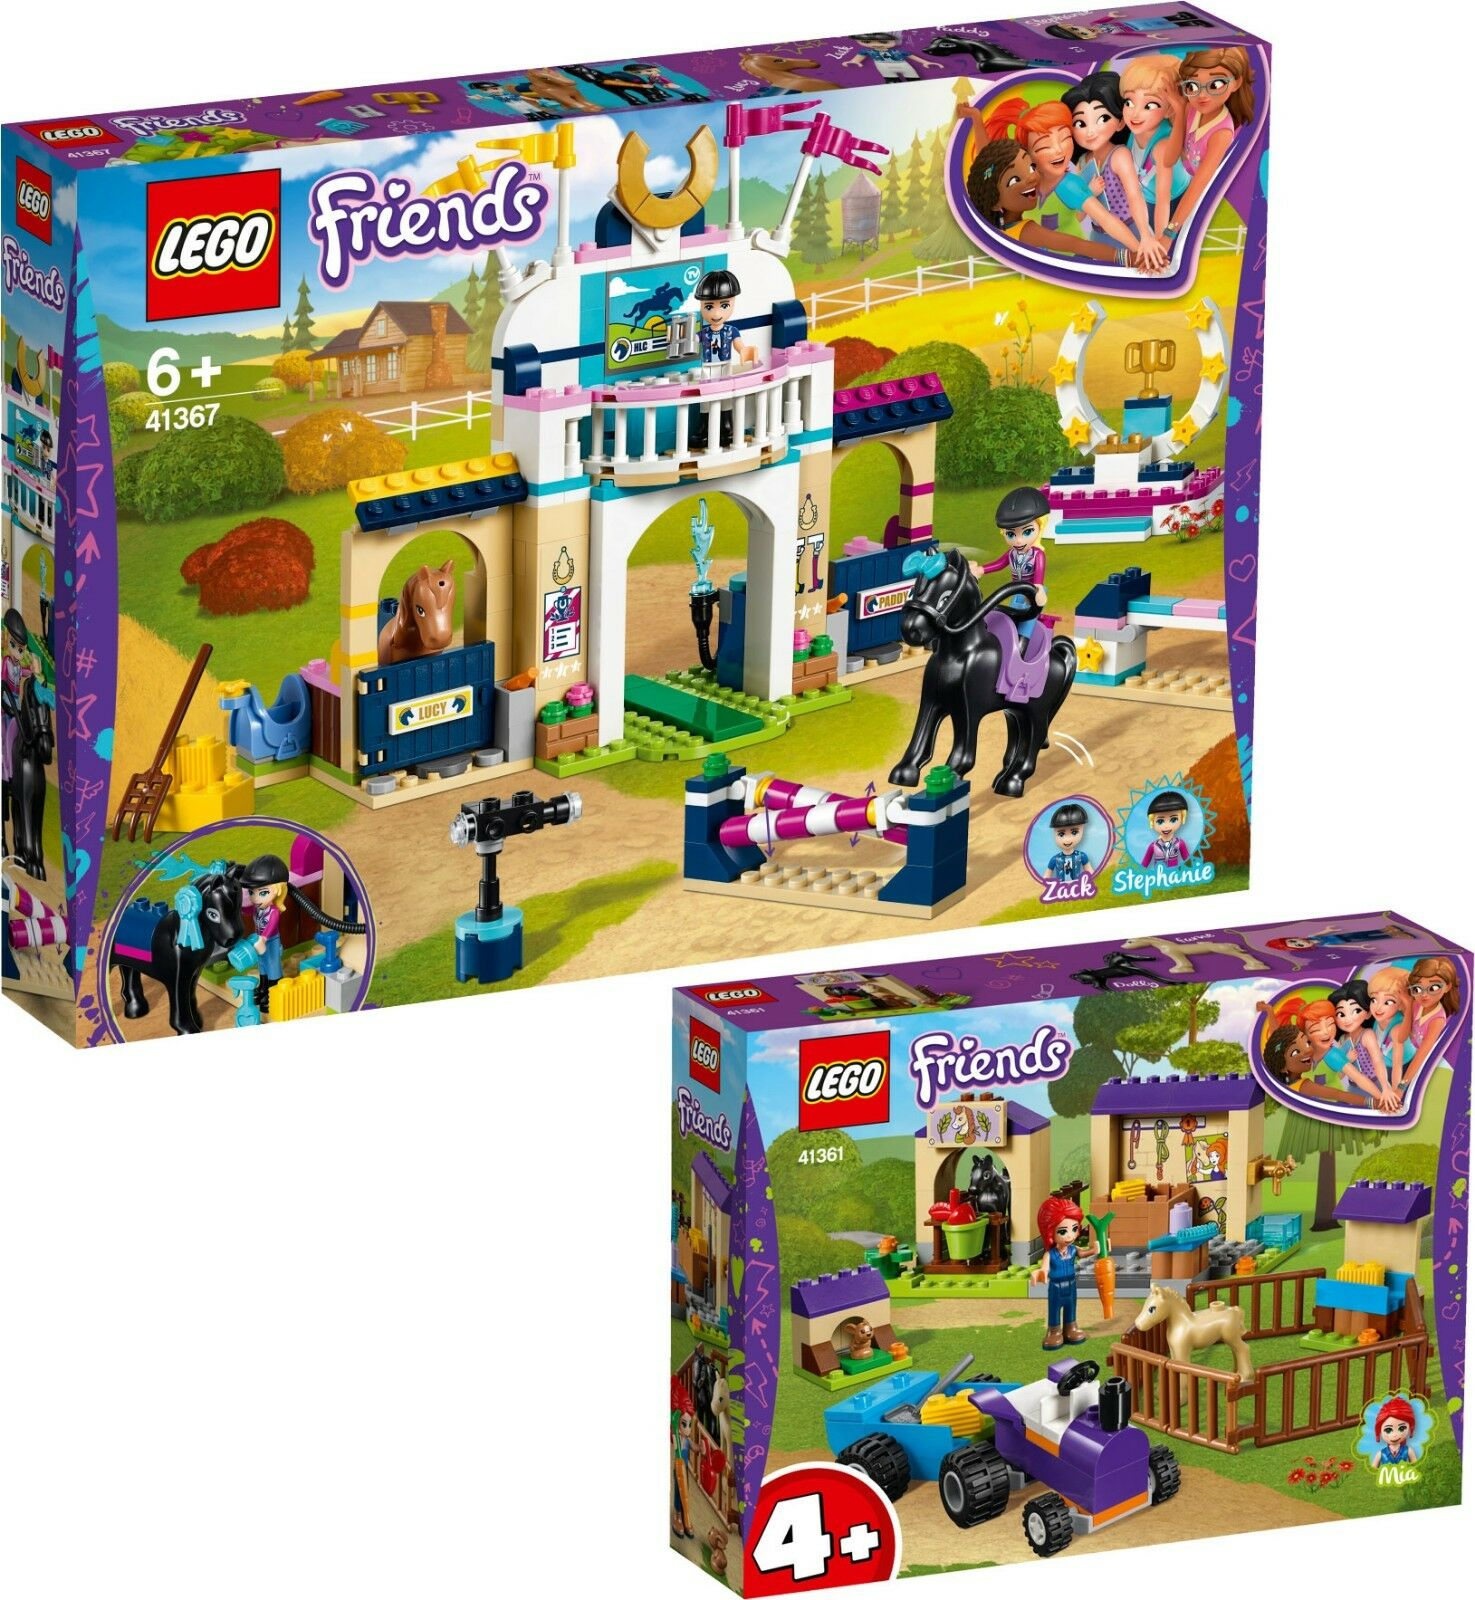 Lego Friends Stephanie REITTURNIER 41367 41361 Mias Poulain étable n1 19